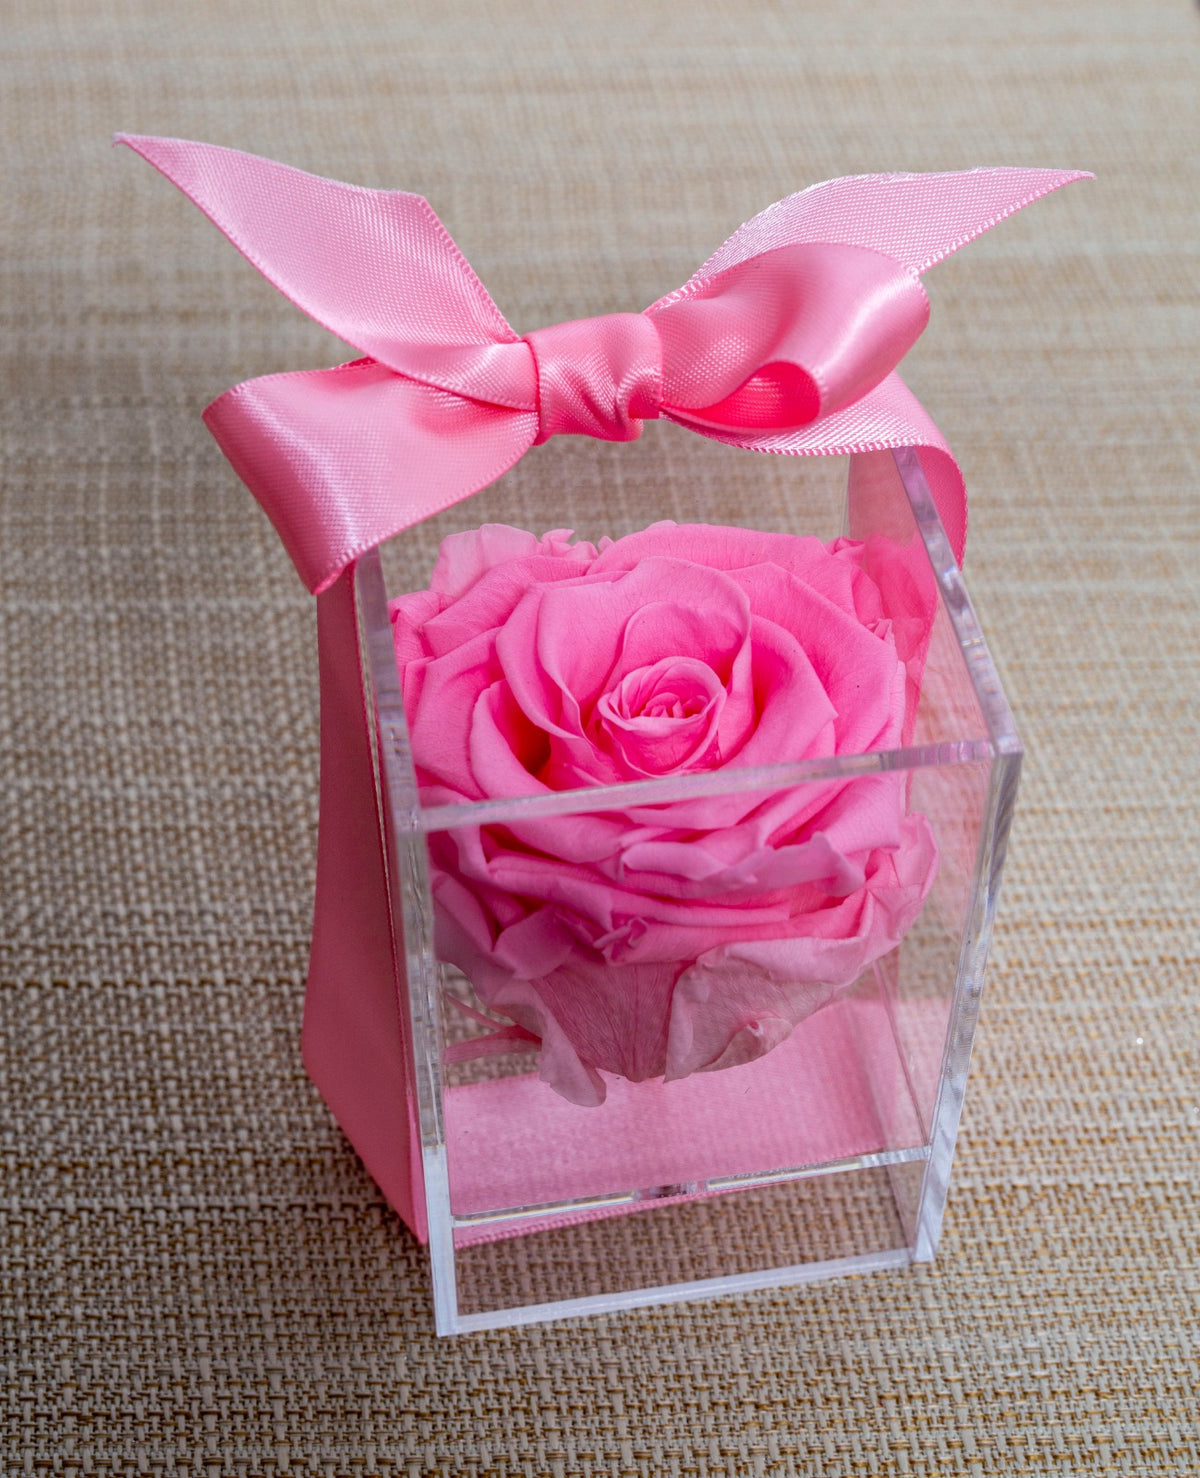 Mini Acrylic Box -customize! - Last more than 1 year